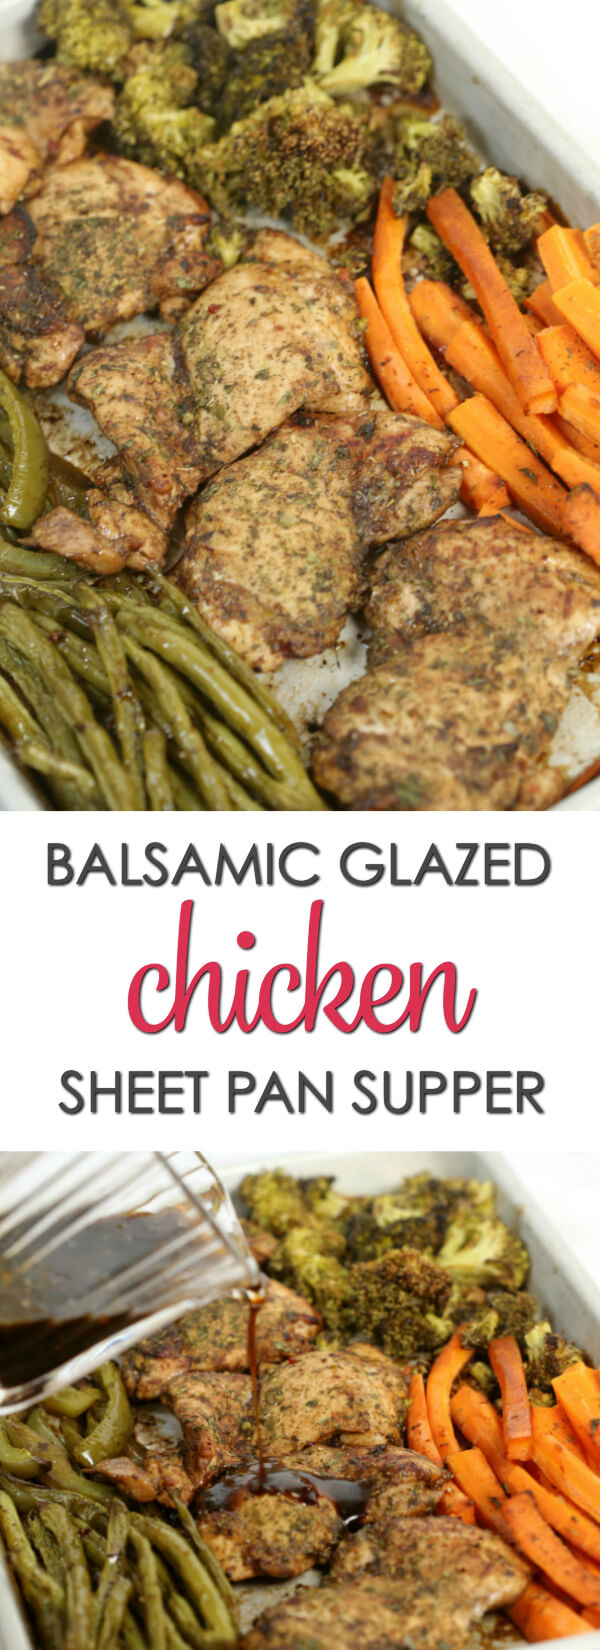 Balsamic Glazed Chicken Sheet Pan Supper - this is one of all time favorite sheet pan chicken recipes